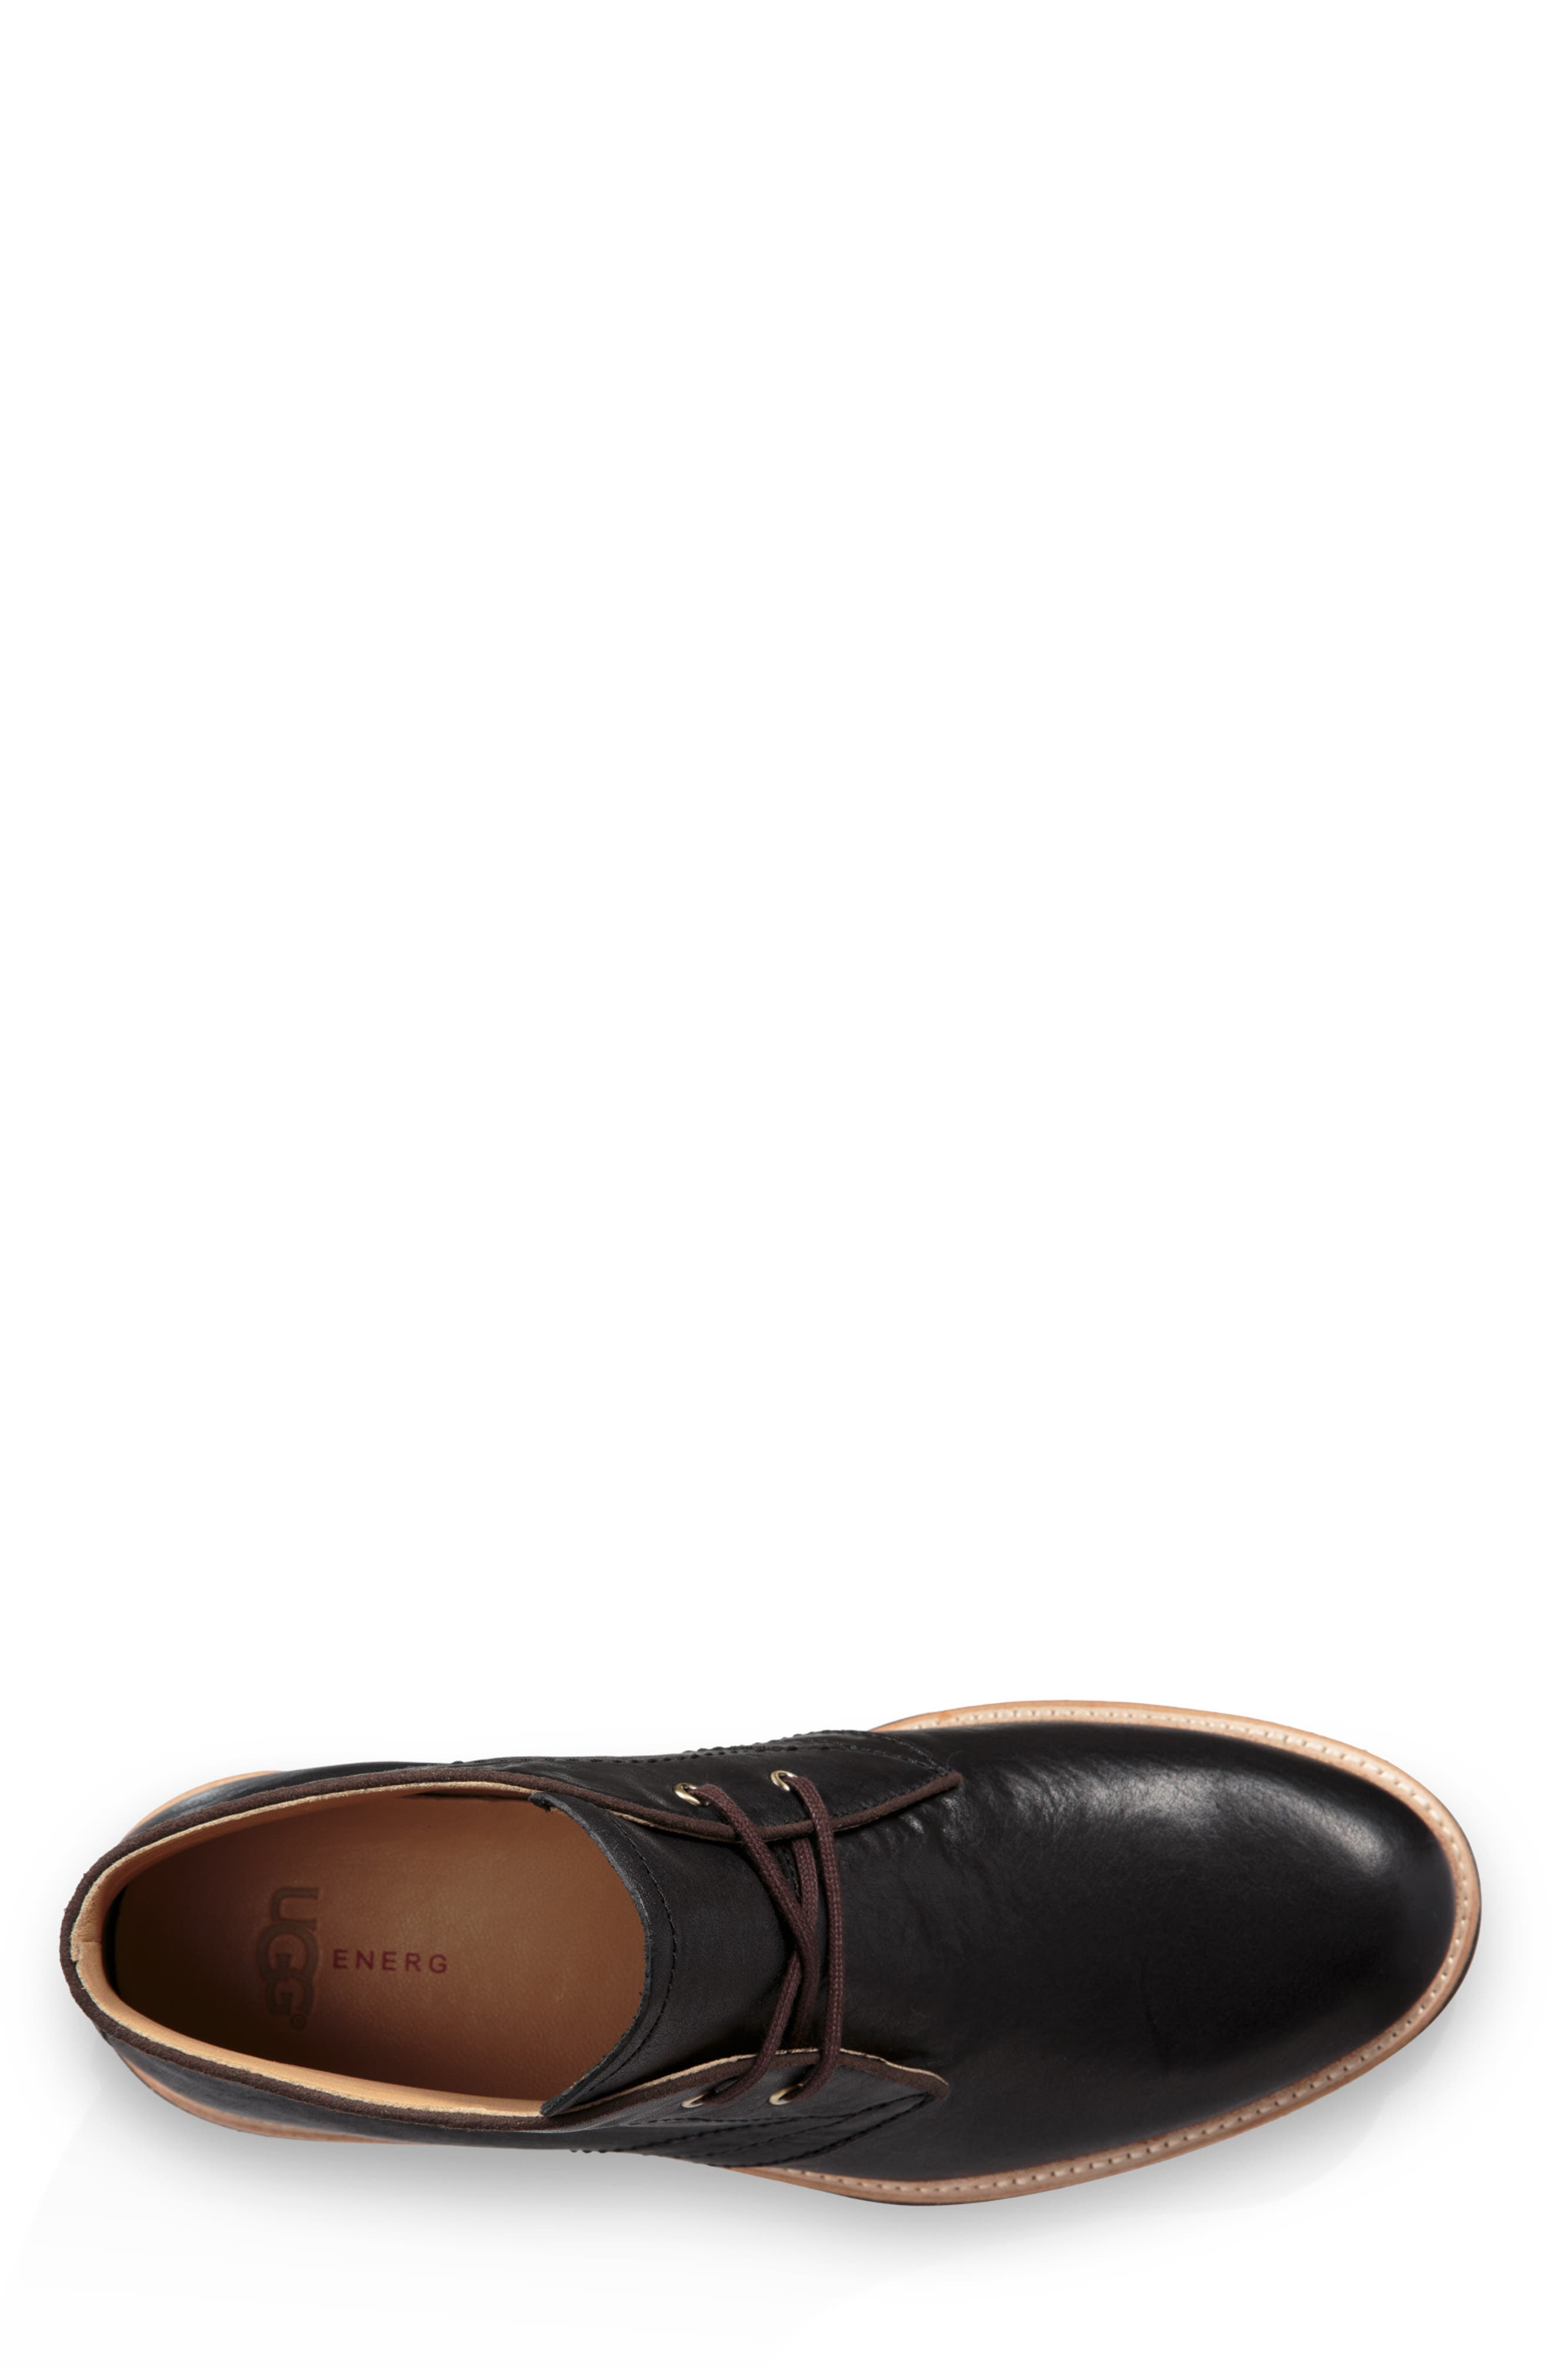 UGG<SUP>®</SUP>, Australia Dagmann Chukka Boot, Alternate thumbnail 4, color, BLACK LEATHER/SUEDE